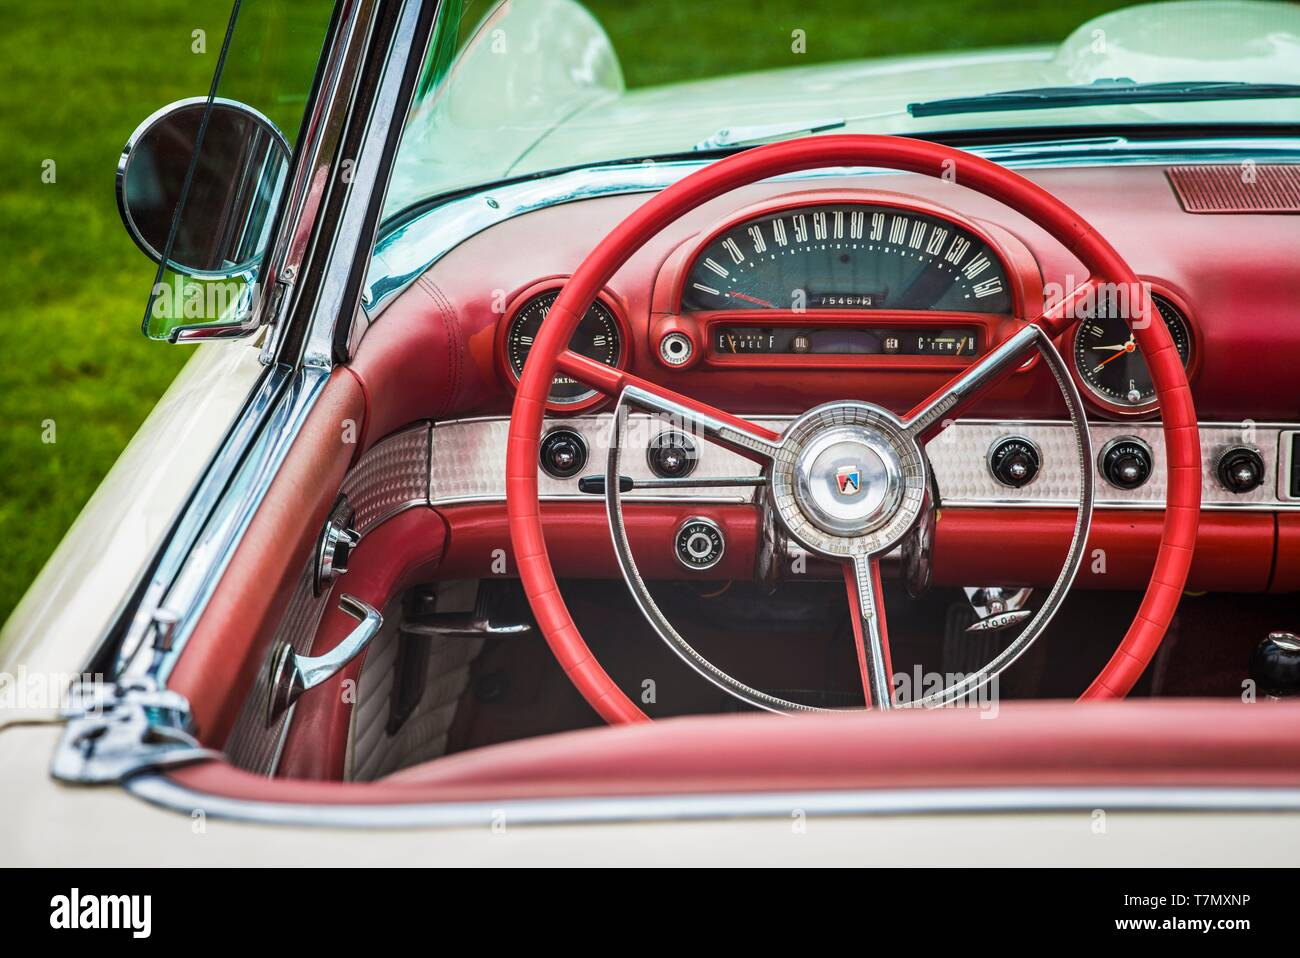 Ford Thunderbird 1950s High Resolution Stock Photography And Images Alamy